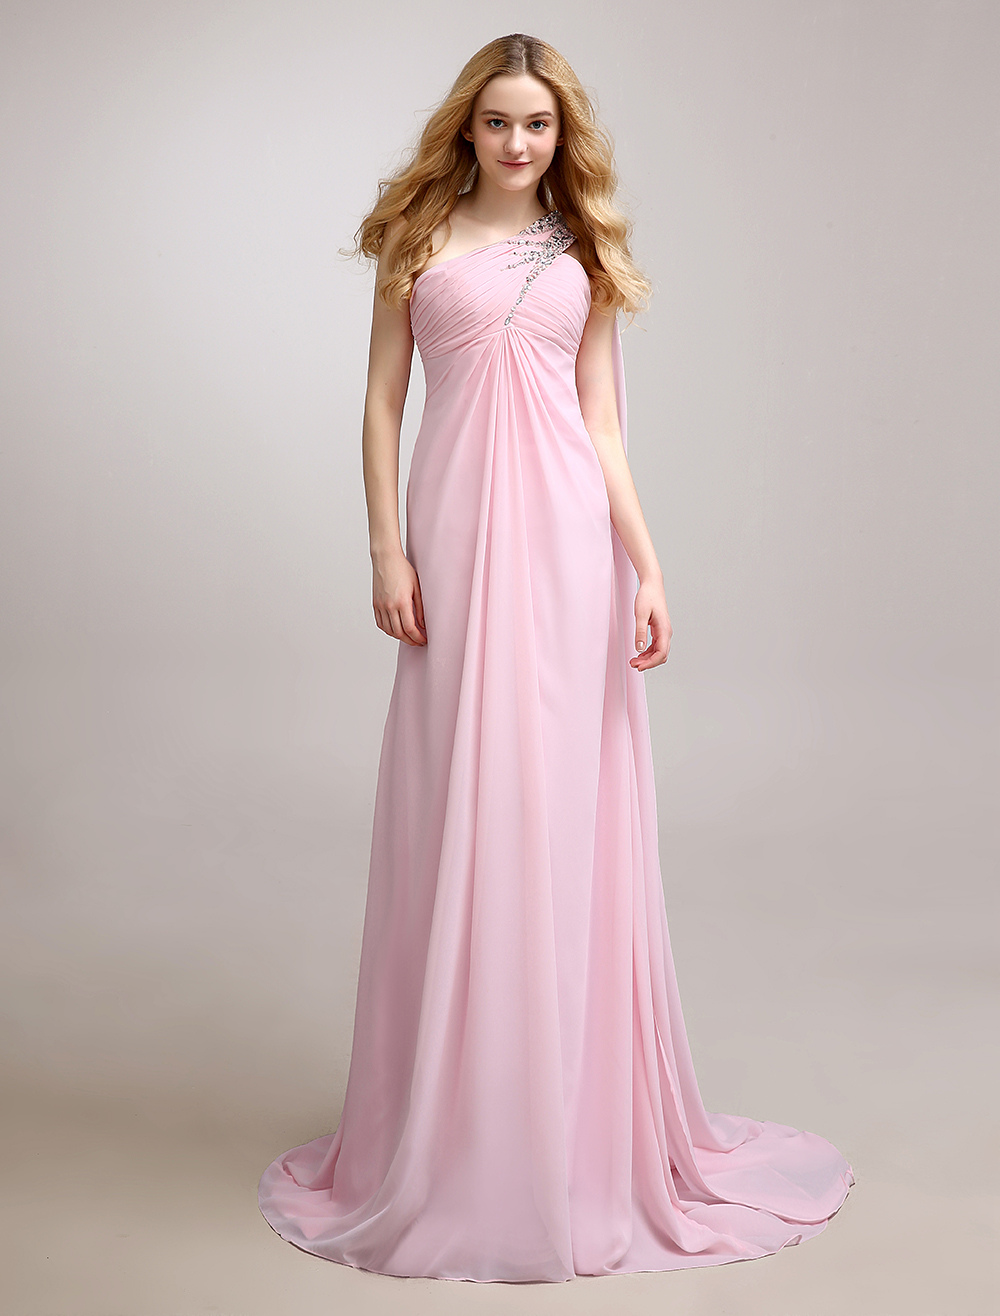 Beaded Chiffon Bridesmaid Dress With One-Shoulder